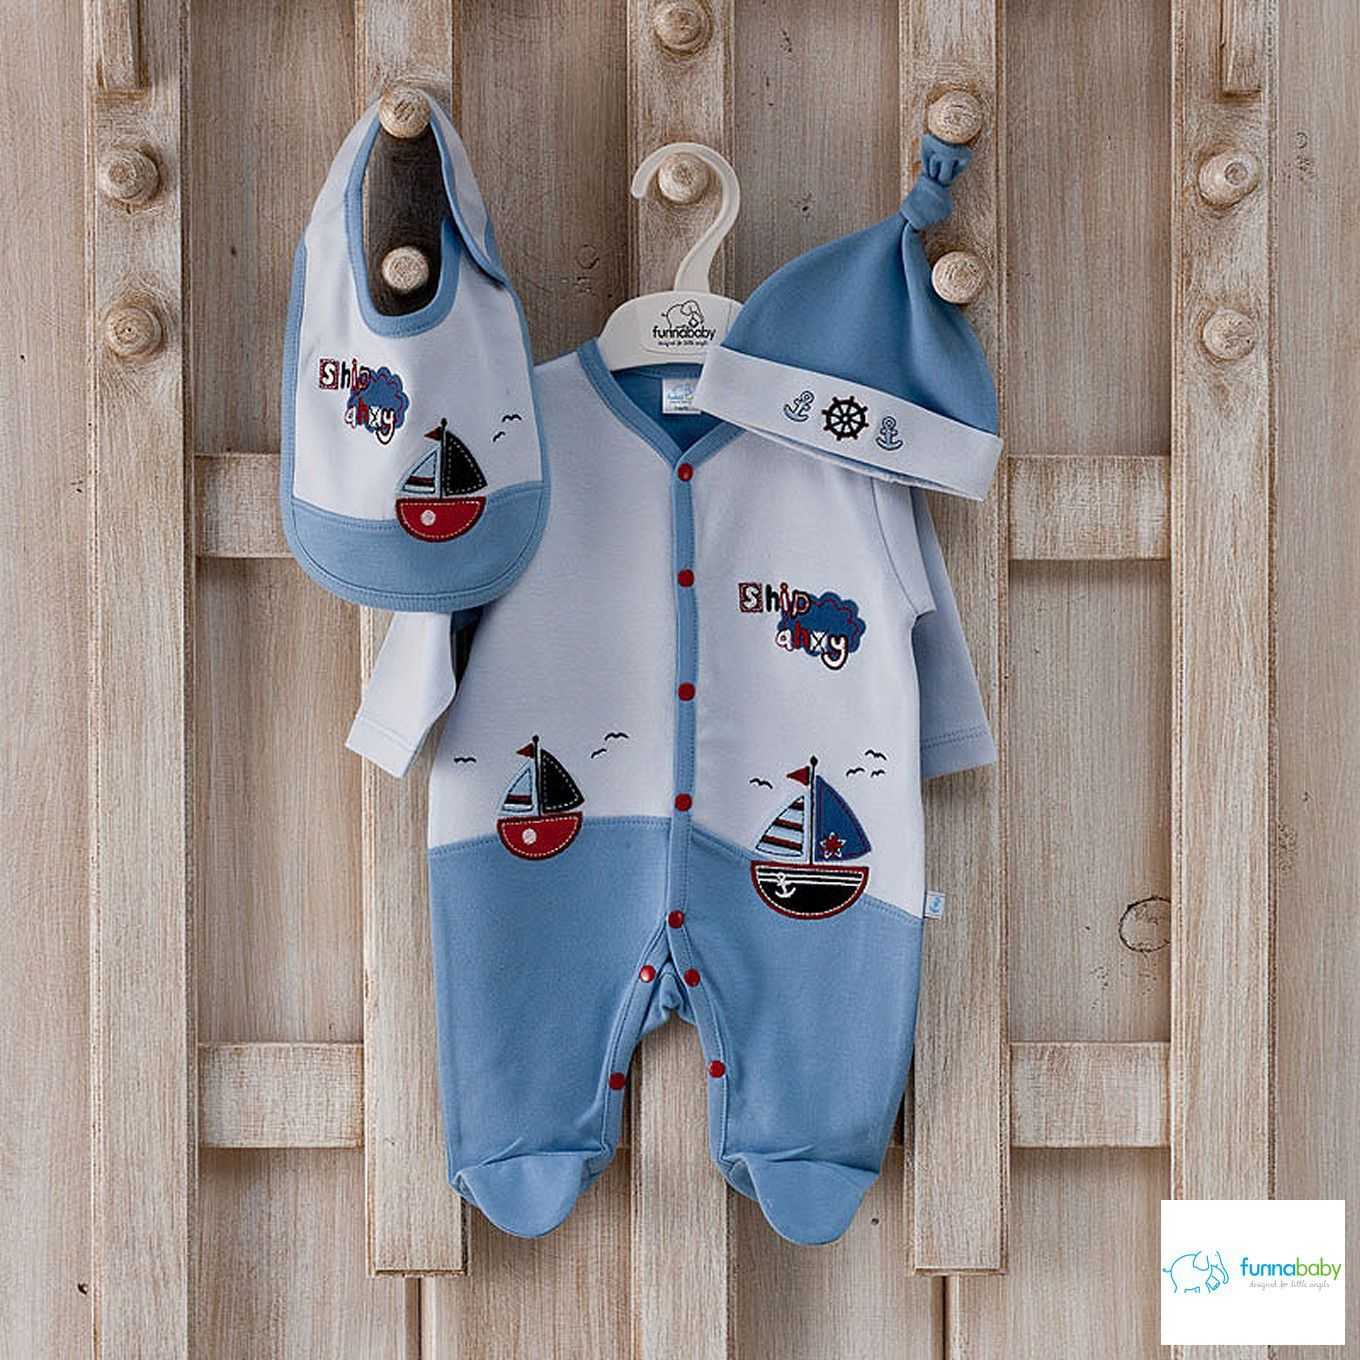 Funnababy Collection Baby products 2014